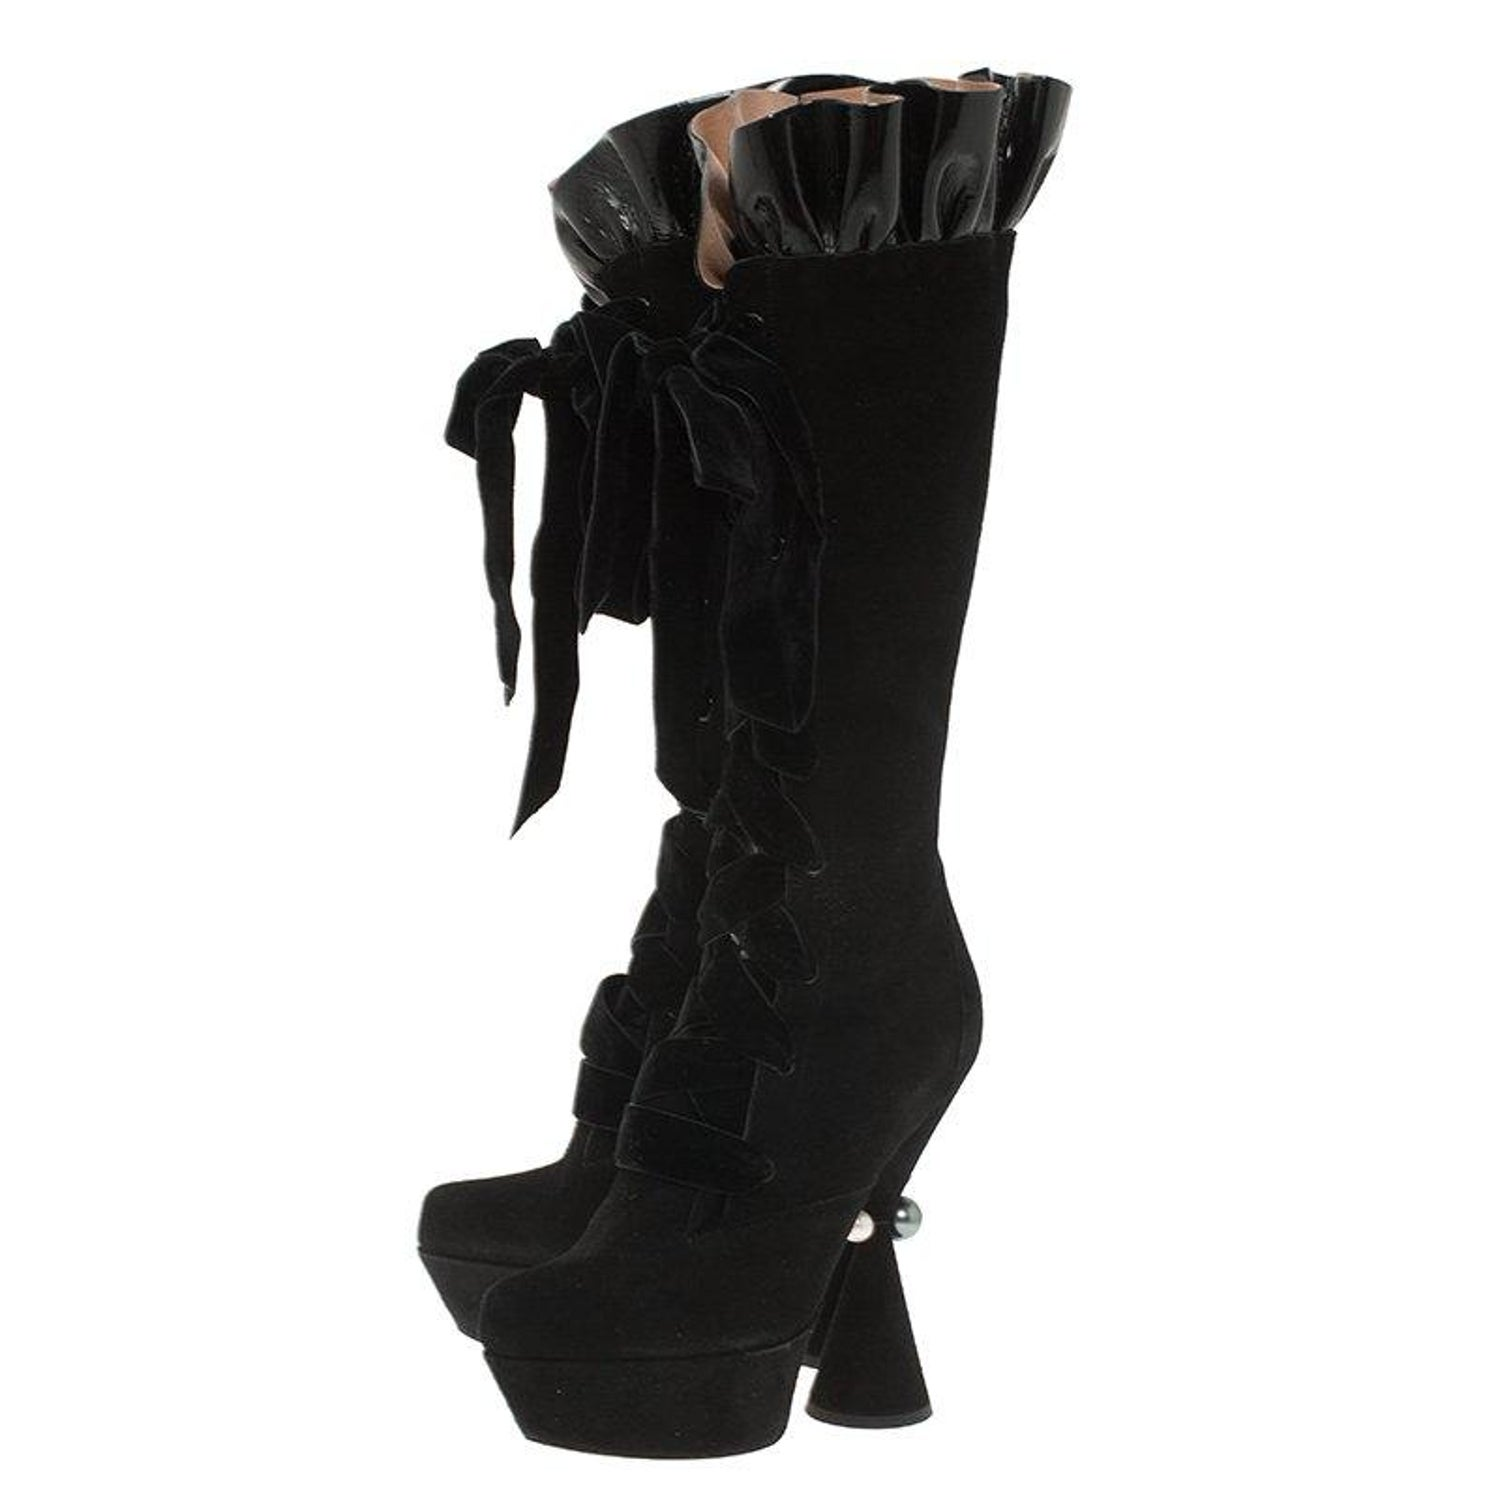 07dc3d00724 Louis Vuitton Black Suede and Patent Ruffle Cancan Velvet Lace Up Knee  Boots Siz at 1stdibs